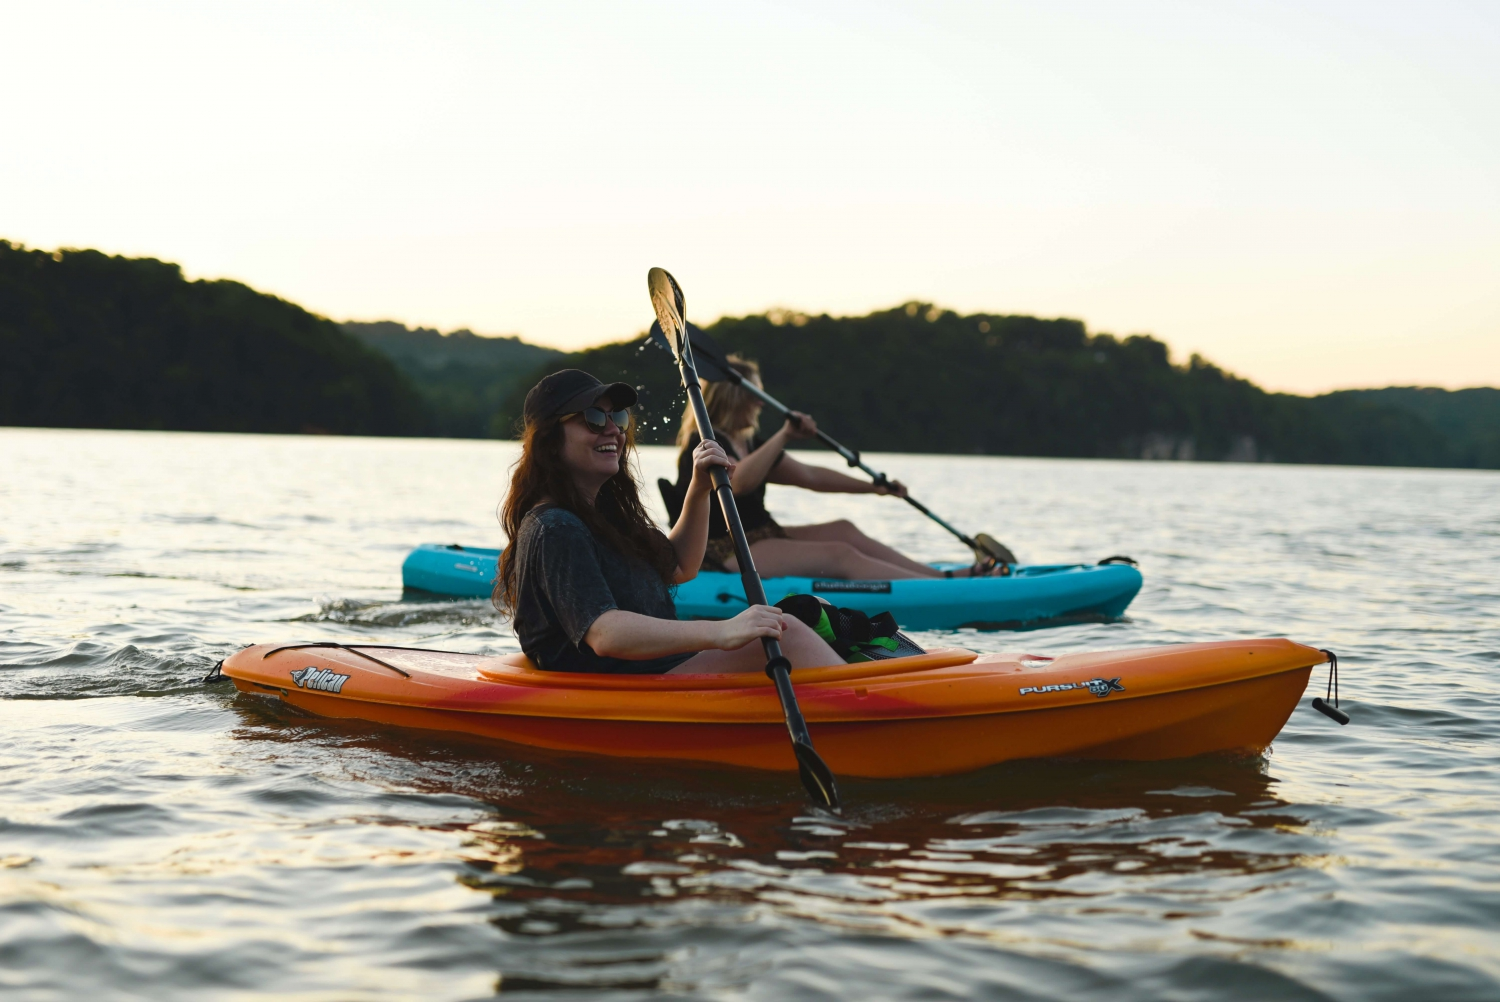 Best Kayaking & Canoeing activities in Sussex